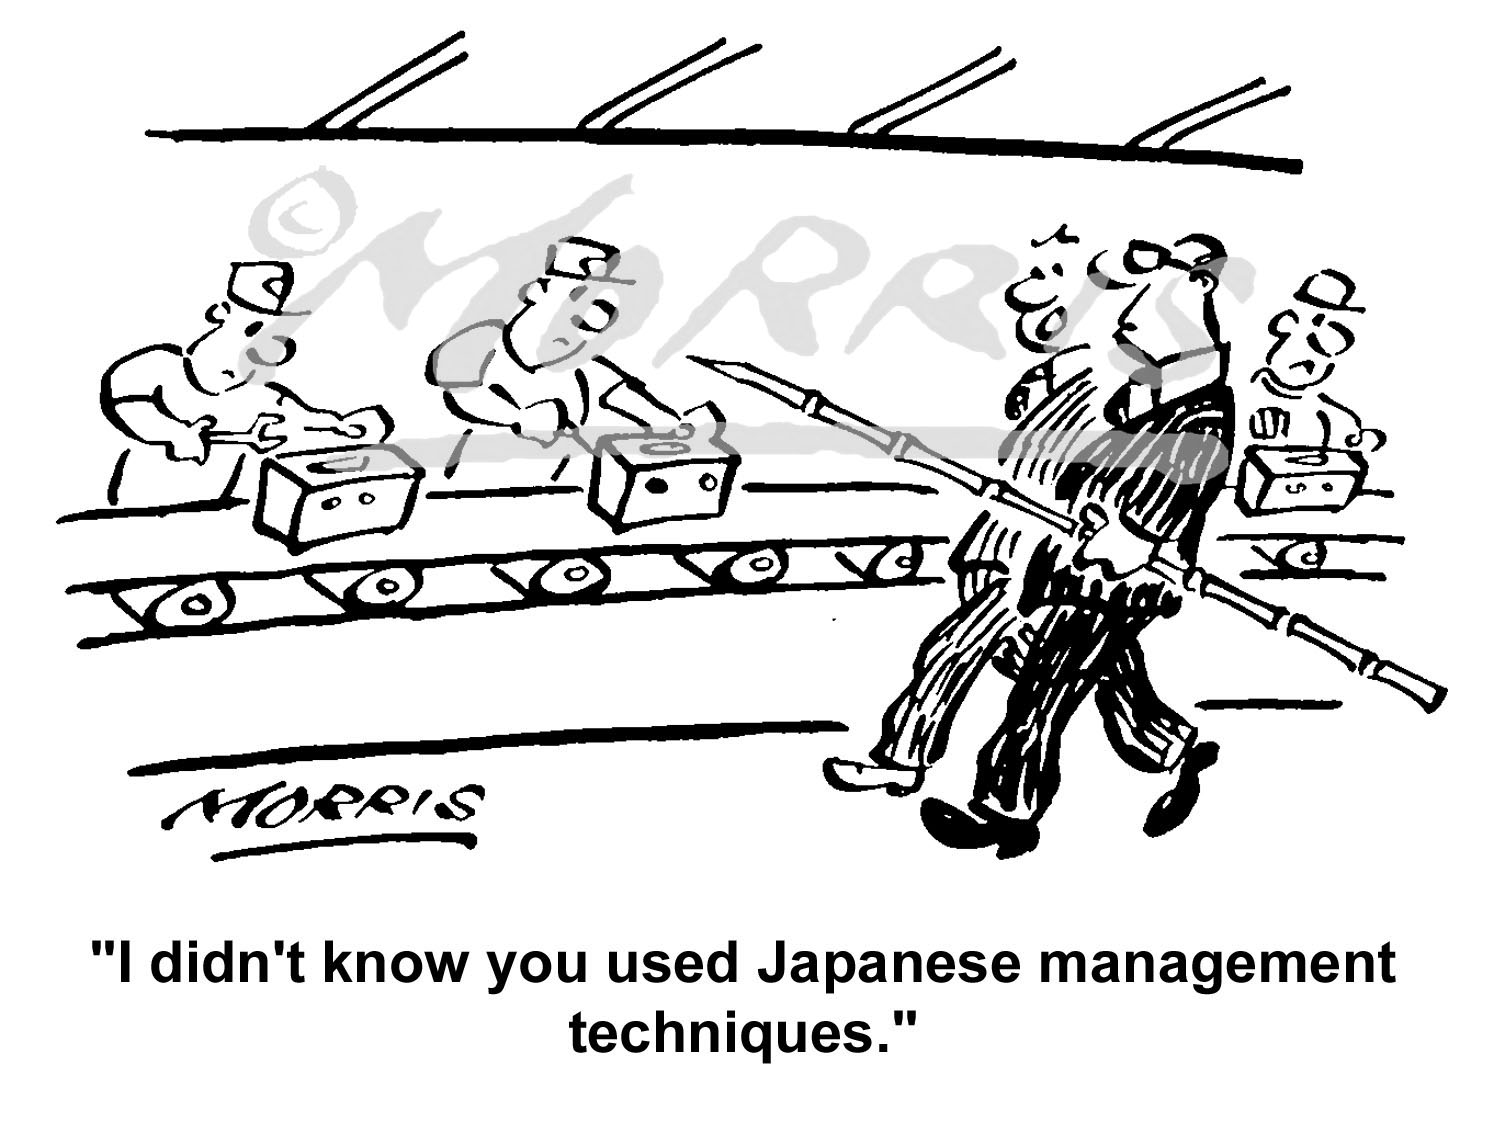 Factory shop floor cartoon, management cartoon Ref: 1752bw